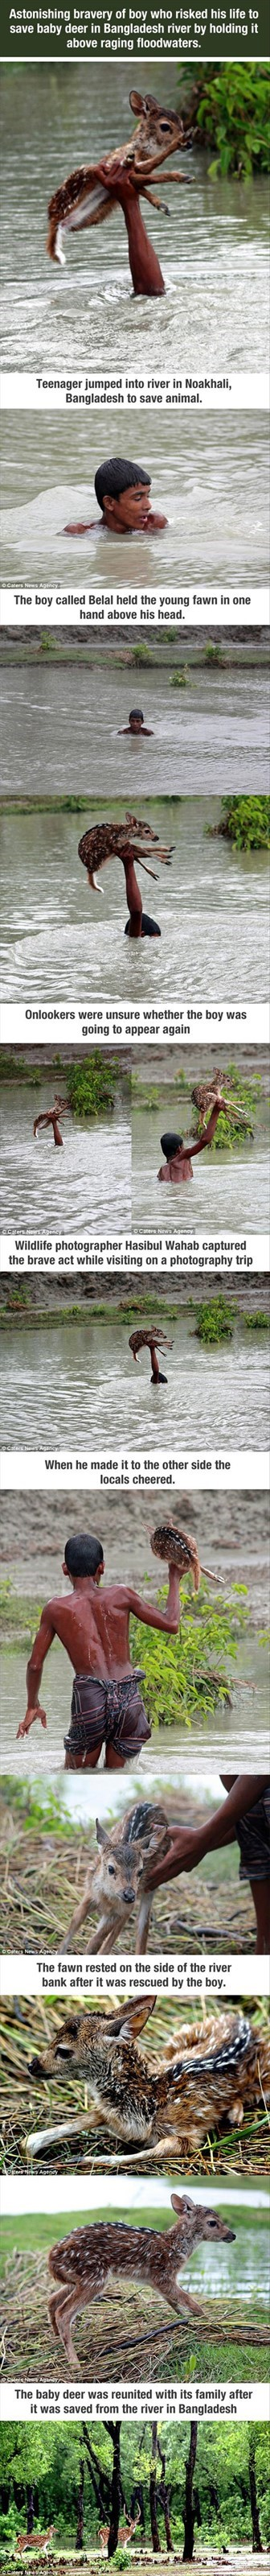 A Heartwarming Account of a Baby Deer in Distress